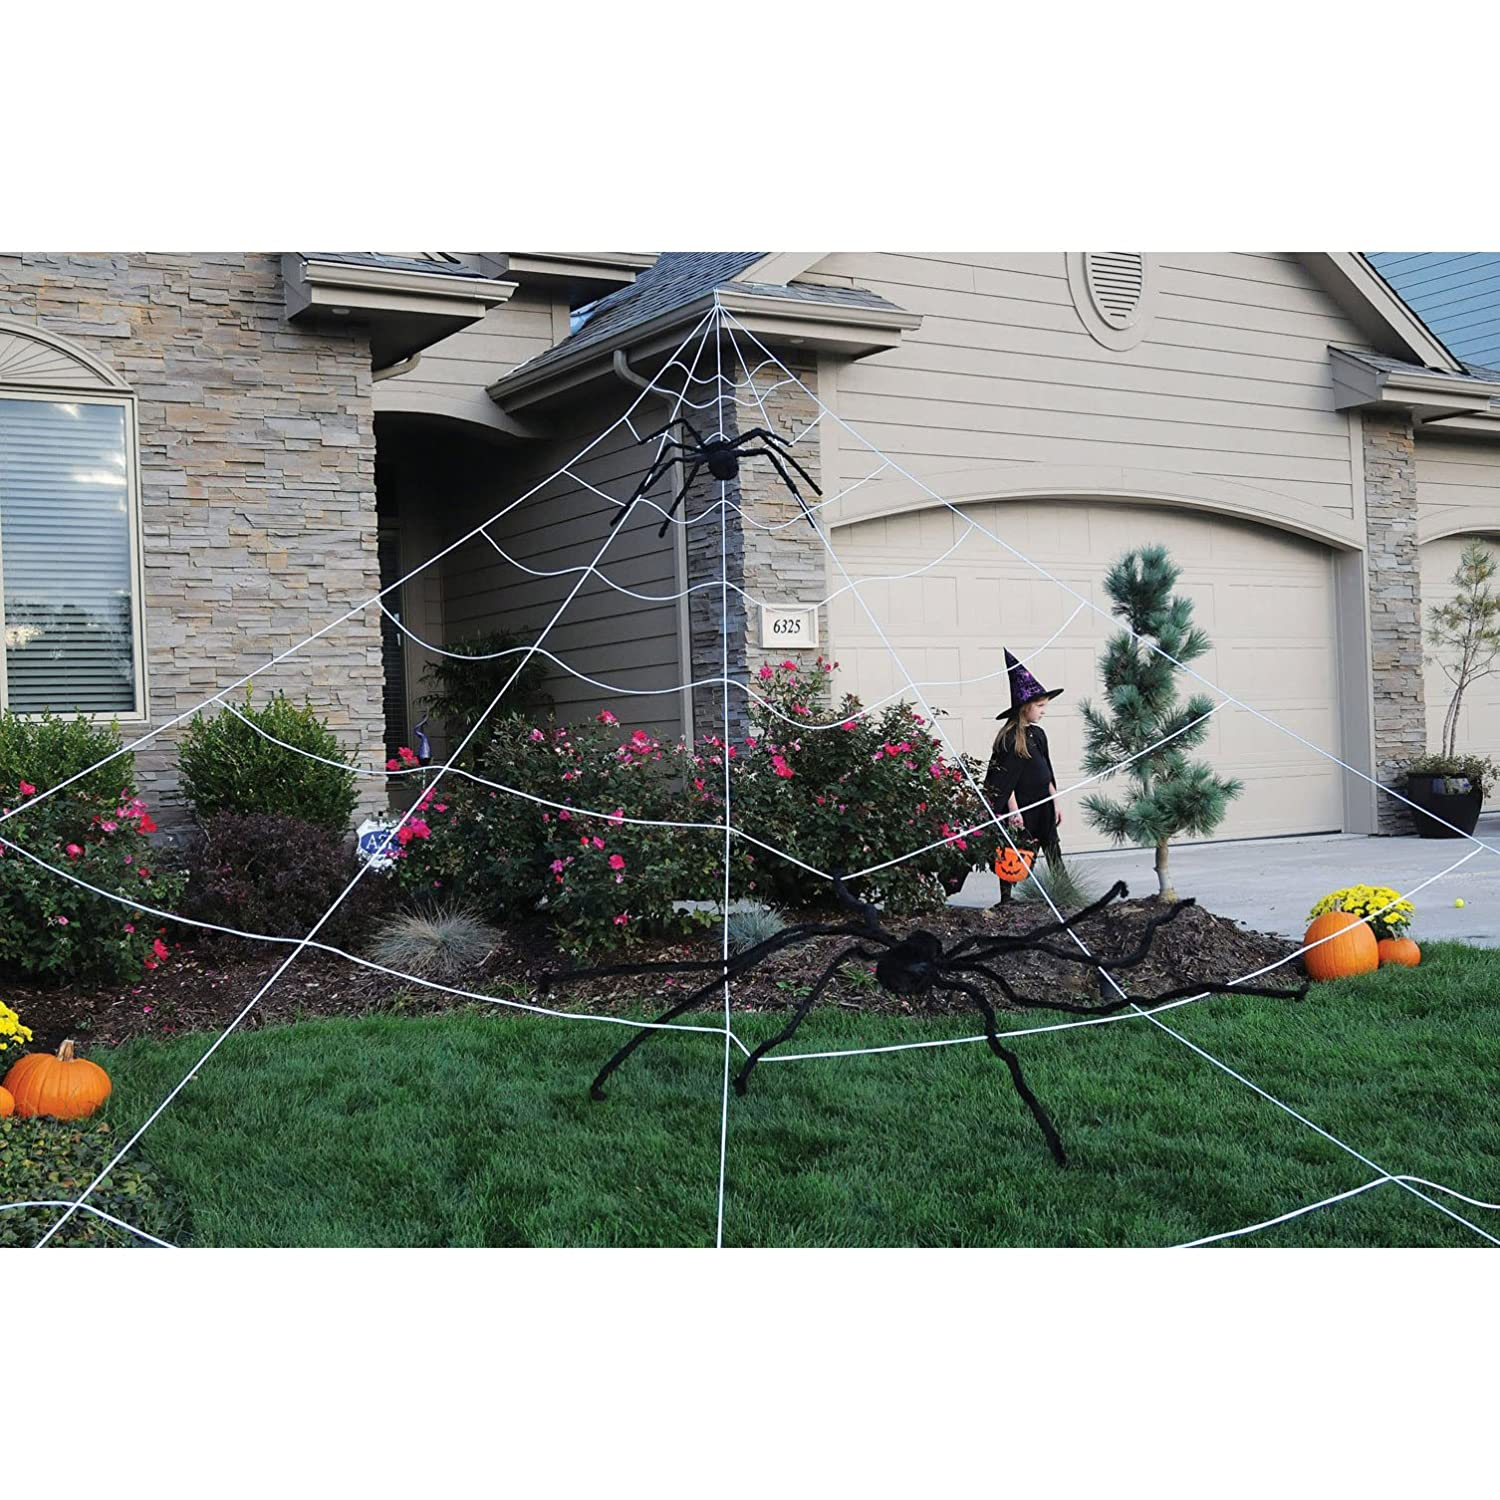 amazoncom mega spider web outdoor halloween decoration terrify your neighbors by funworld toys games - Halloween Spider Web Decorations